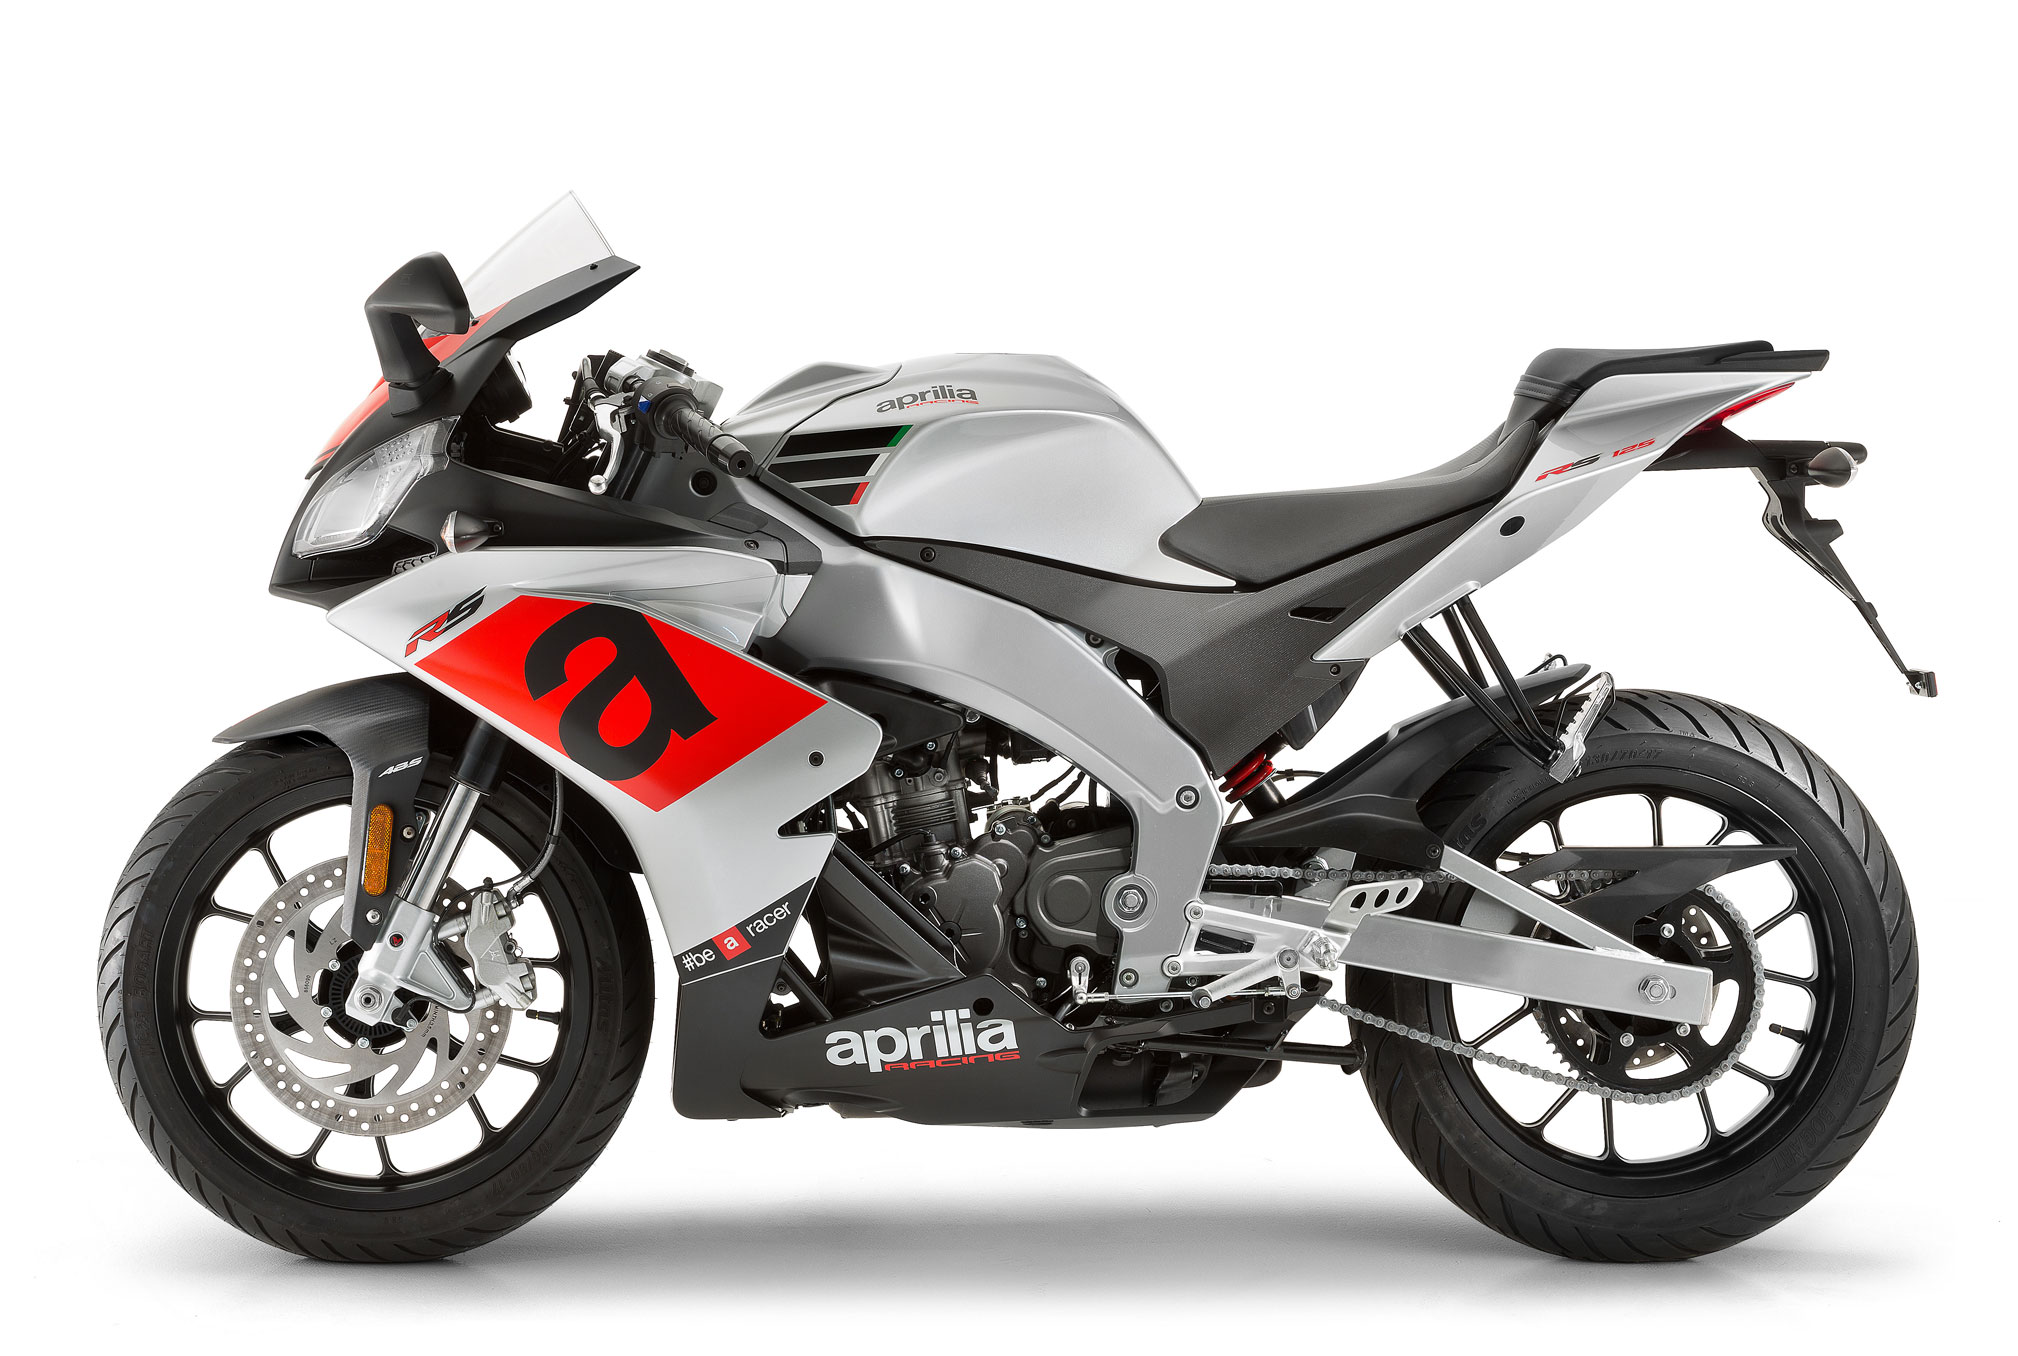 2018 aprilia rs125 review totalmotorcycle. Black Bedroom Furniture Sets. Home Design Ideas